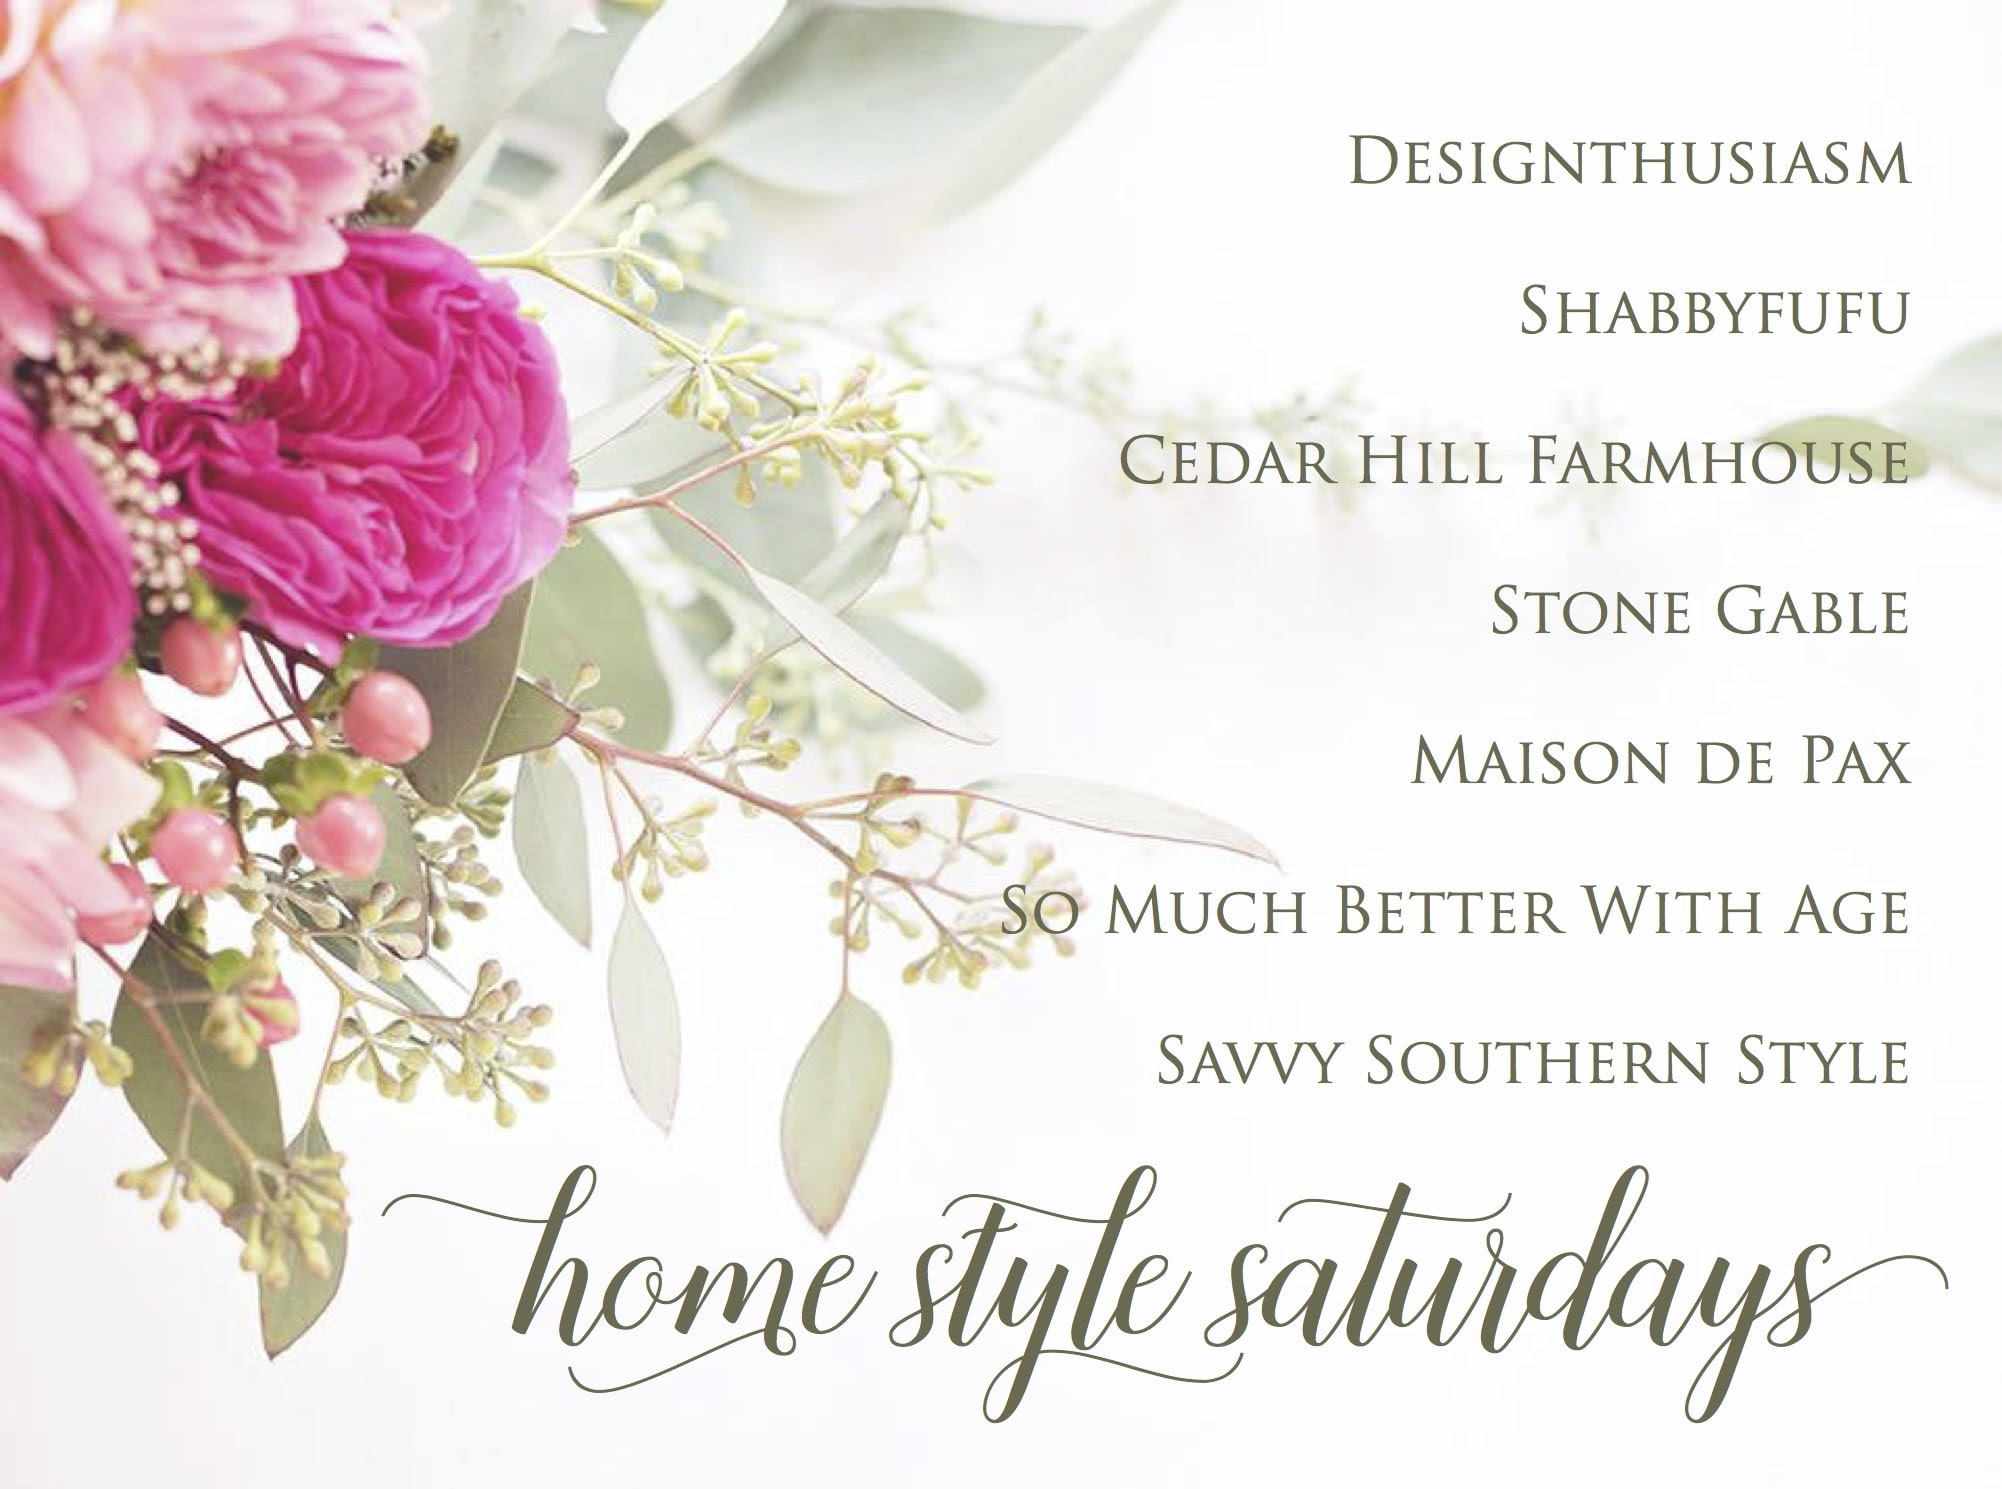 home-style-saturdays-logo